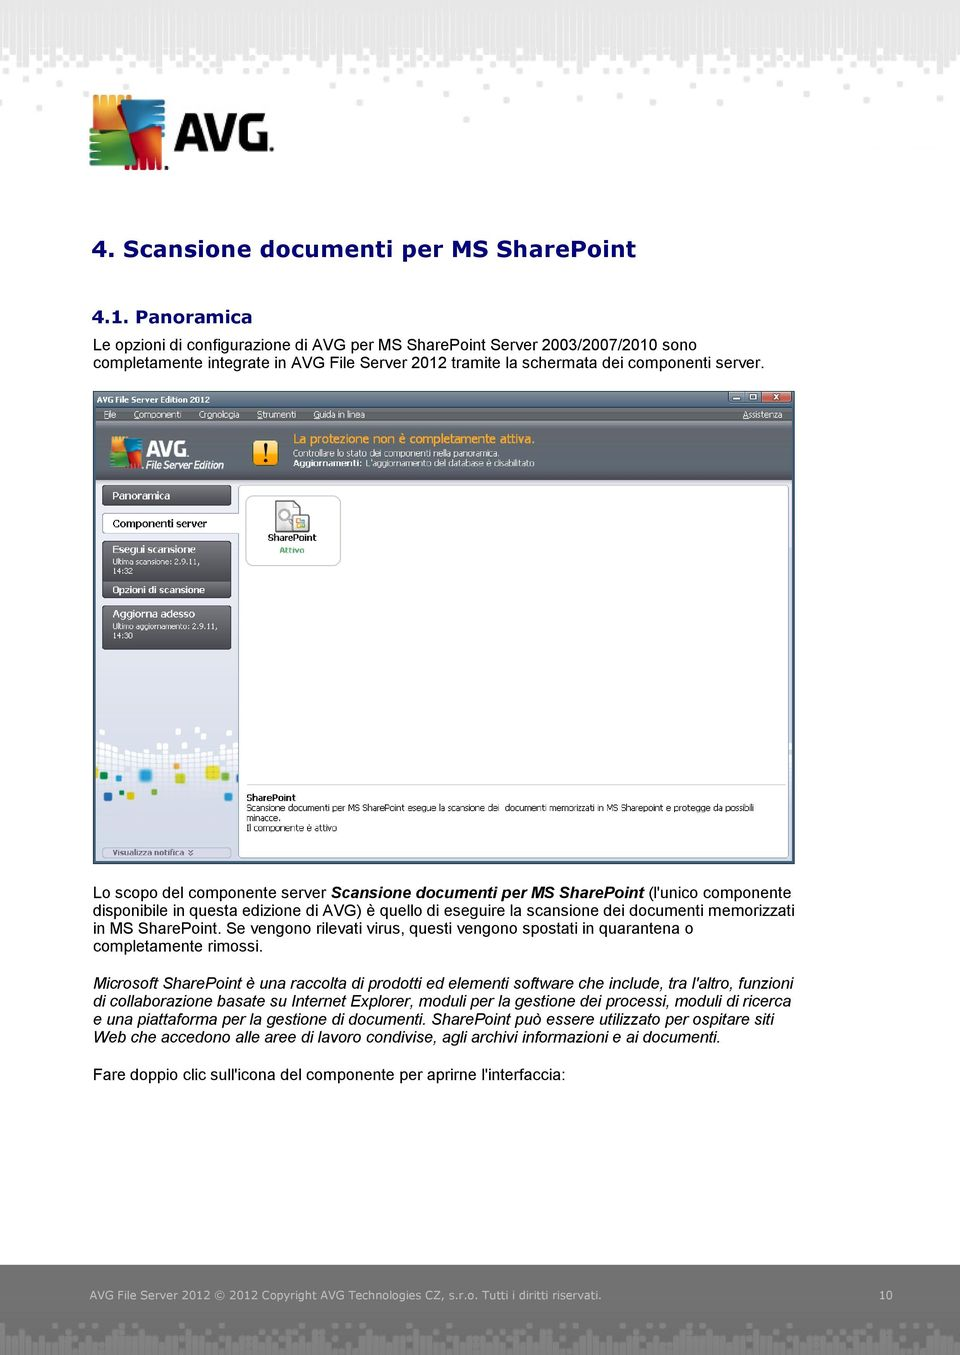 Lo scopo del componente server Scansione documenti per MS SharePoint (l'unico componente disponibile in questa edizione di AVG) è quello di eseguire la scansione dei documenti memorizzati in MS